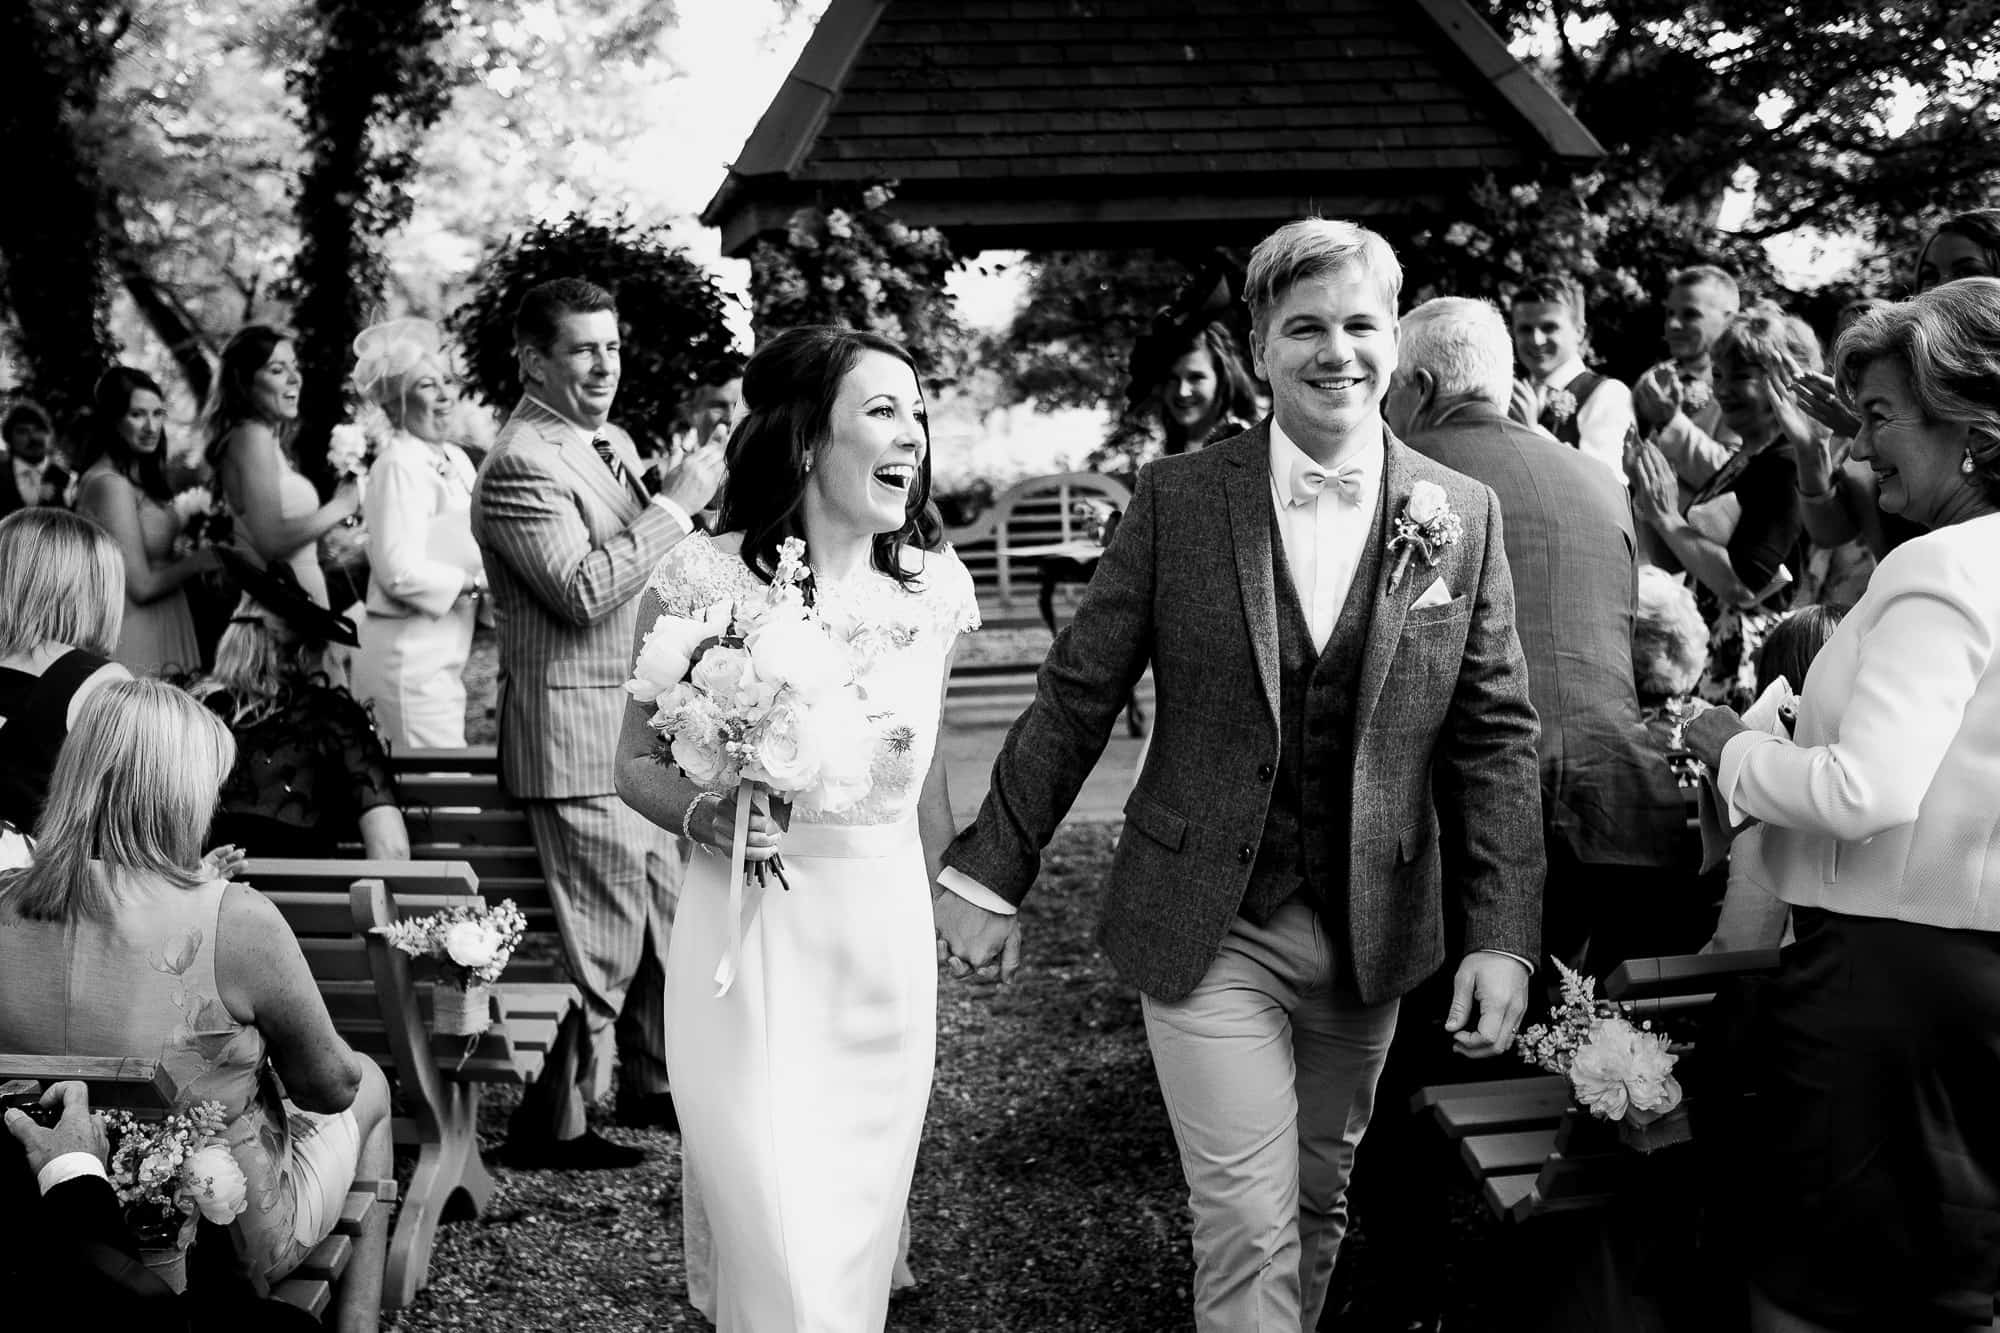 huntsham-court-wedding-photography-matt-tyler-0030